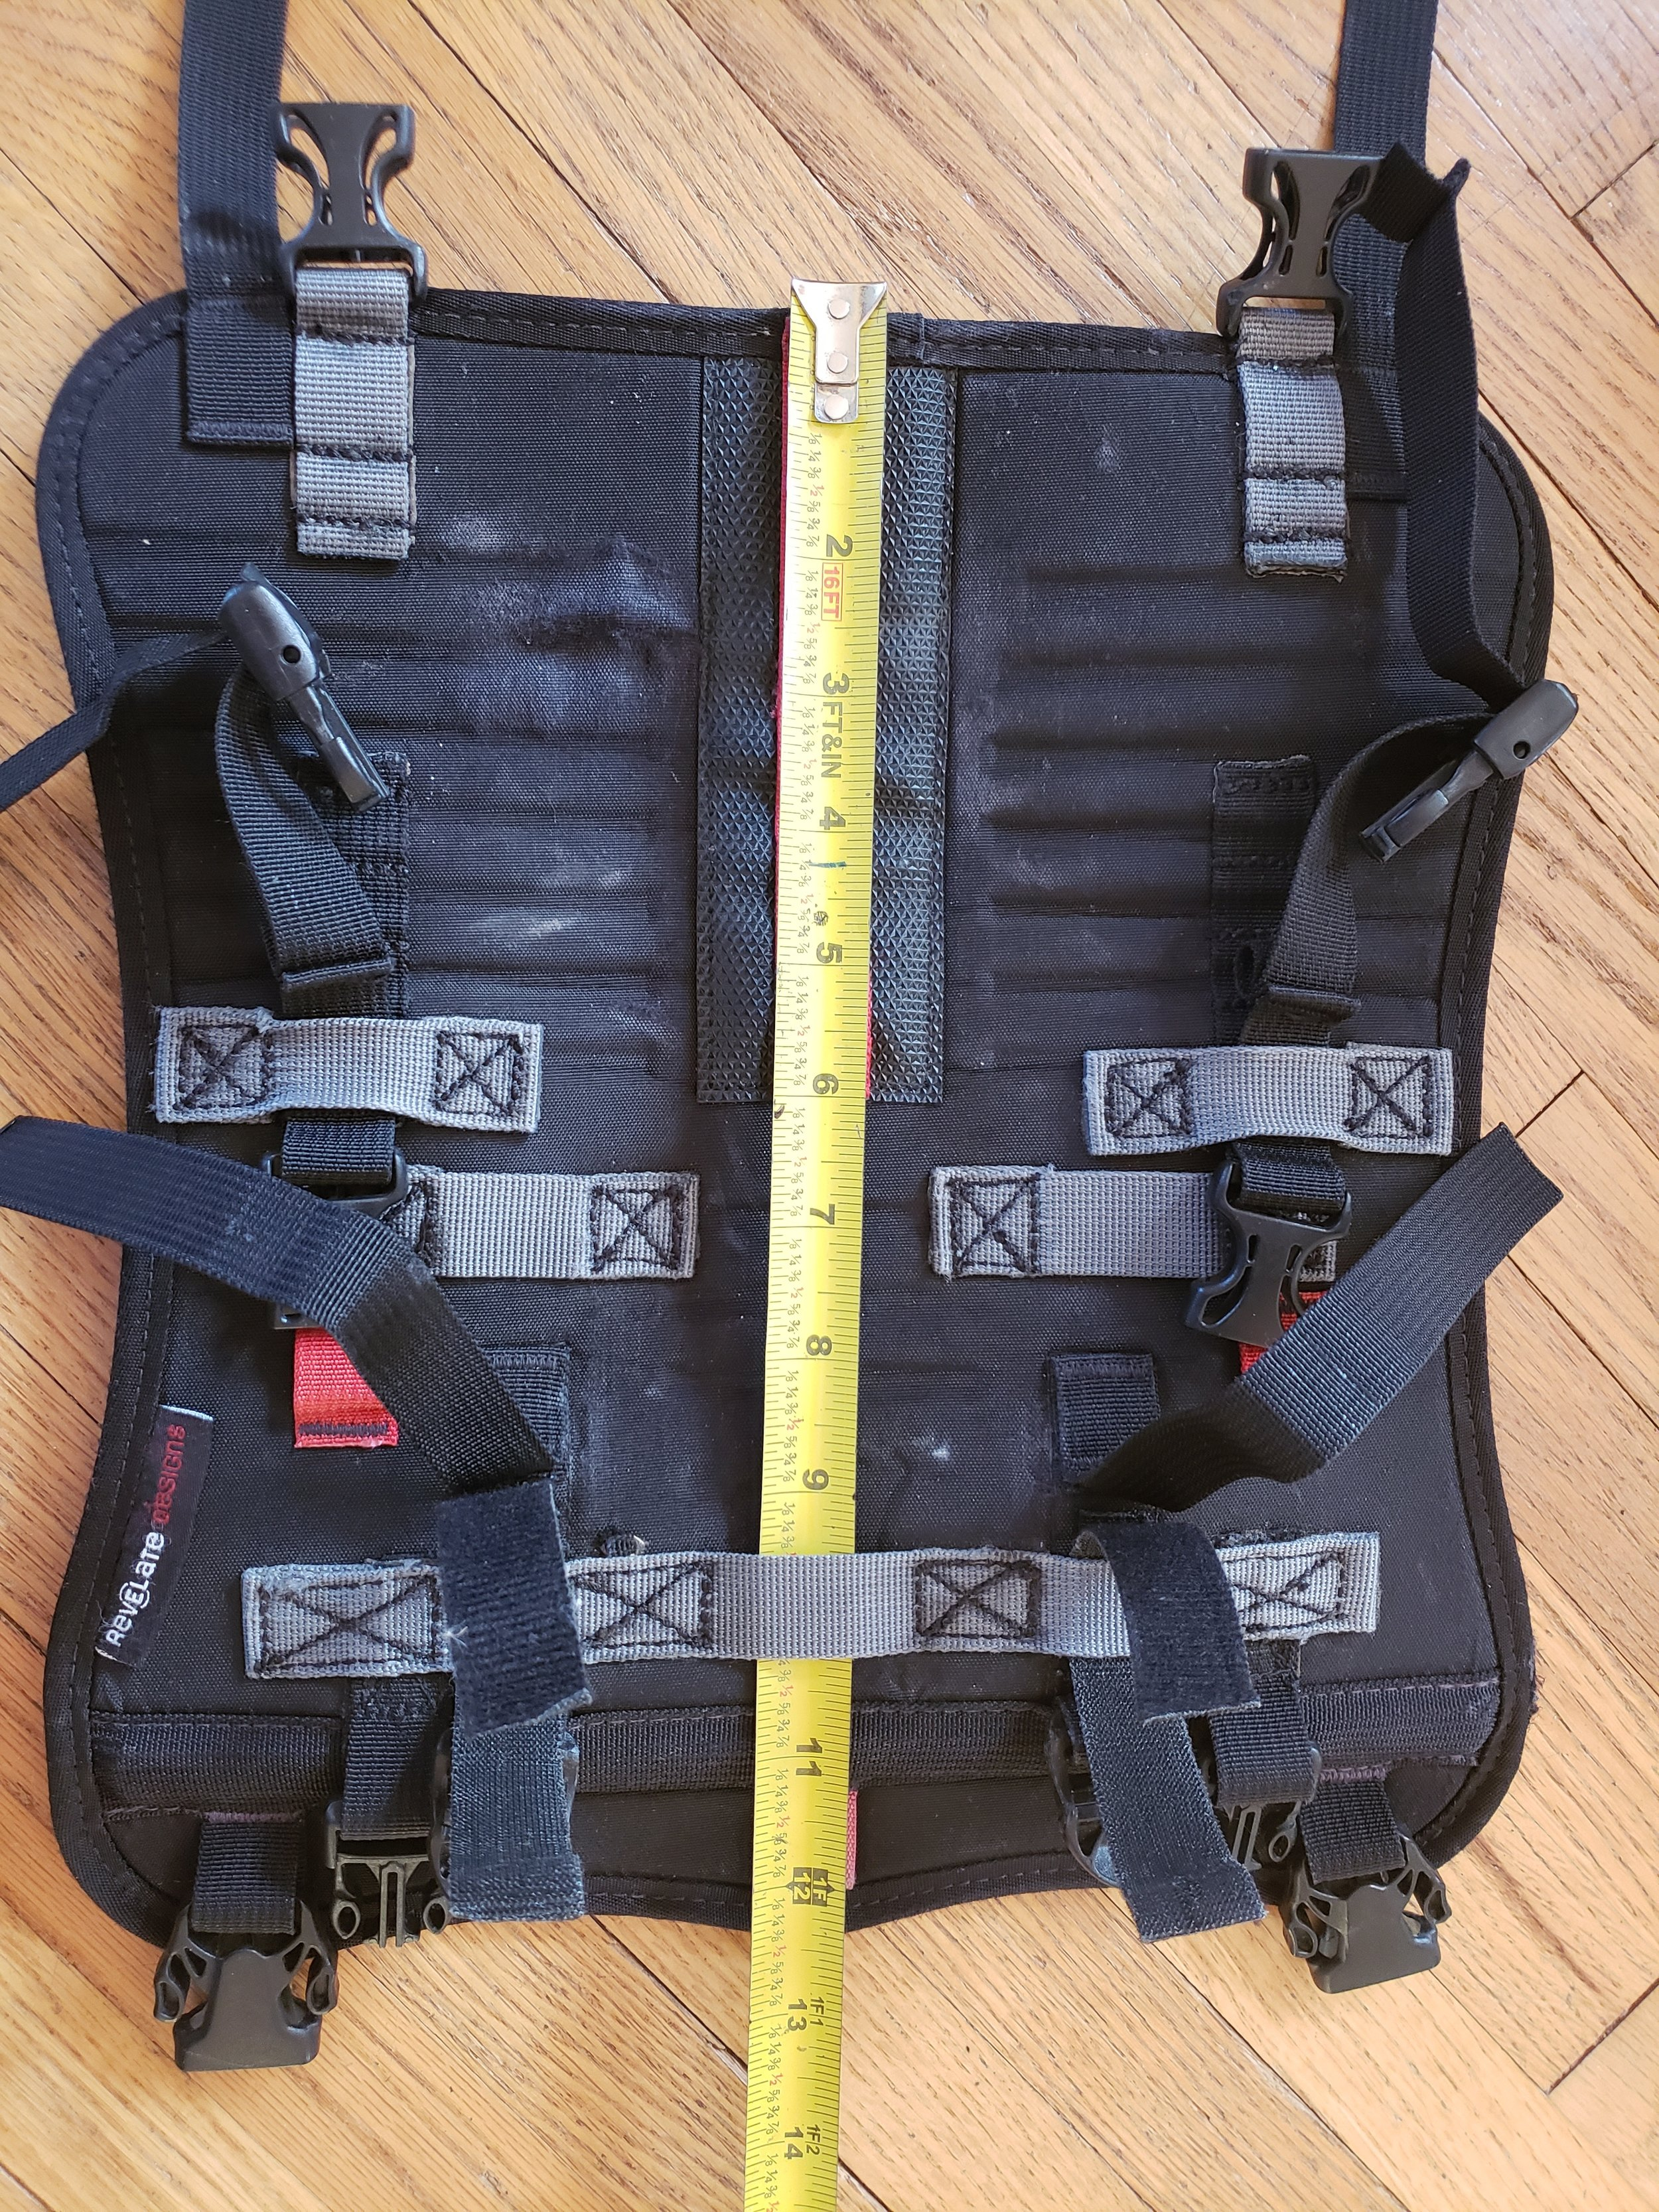 Revelate Design Harness & BarYak Expedition